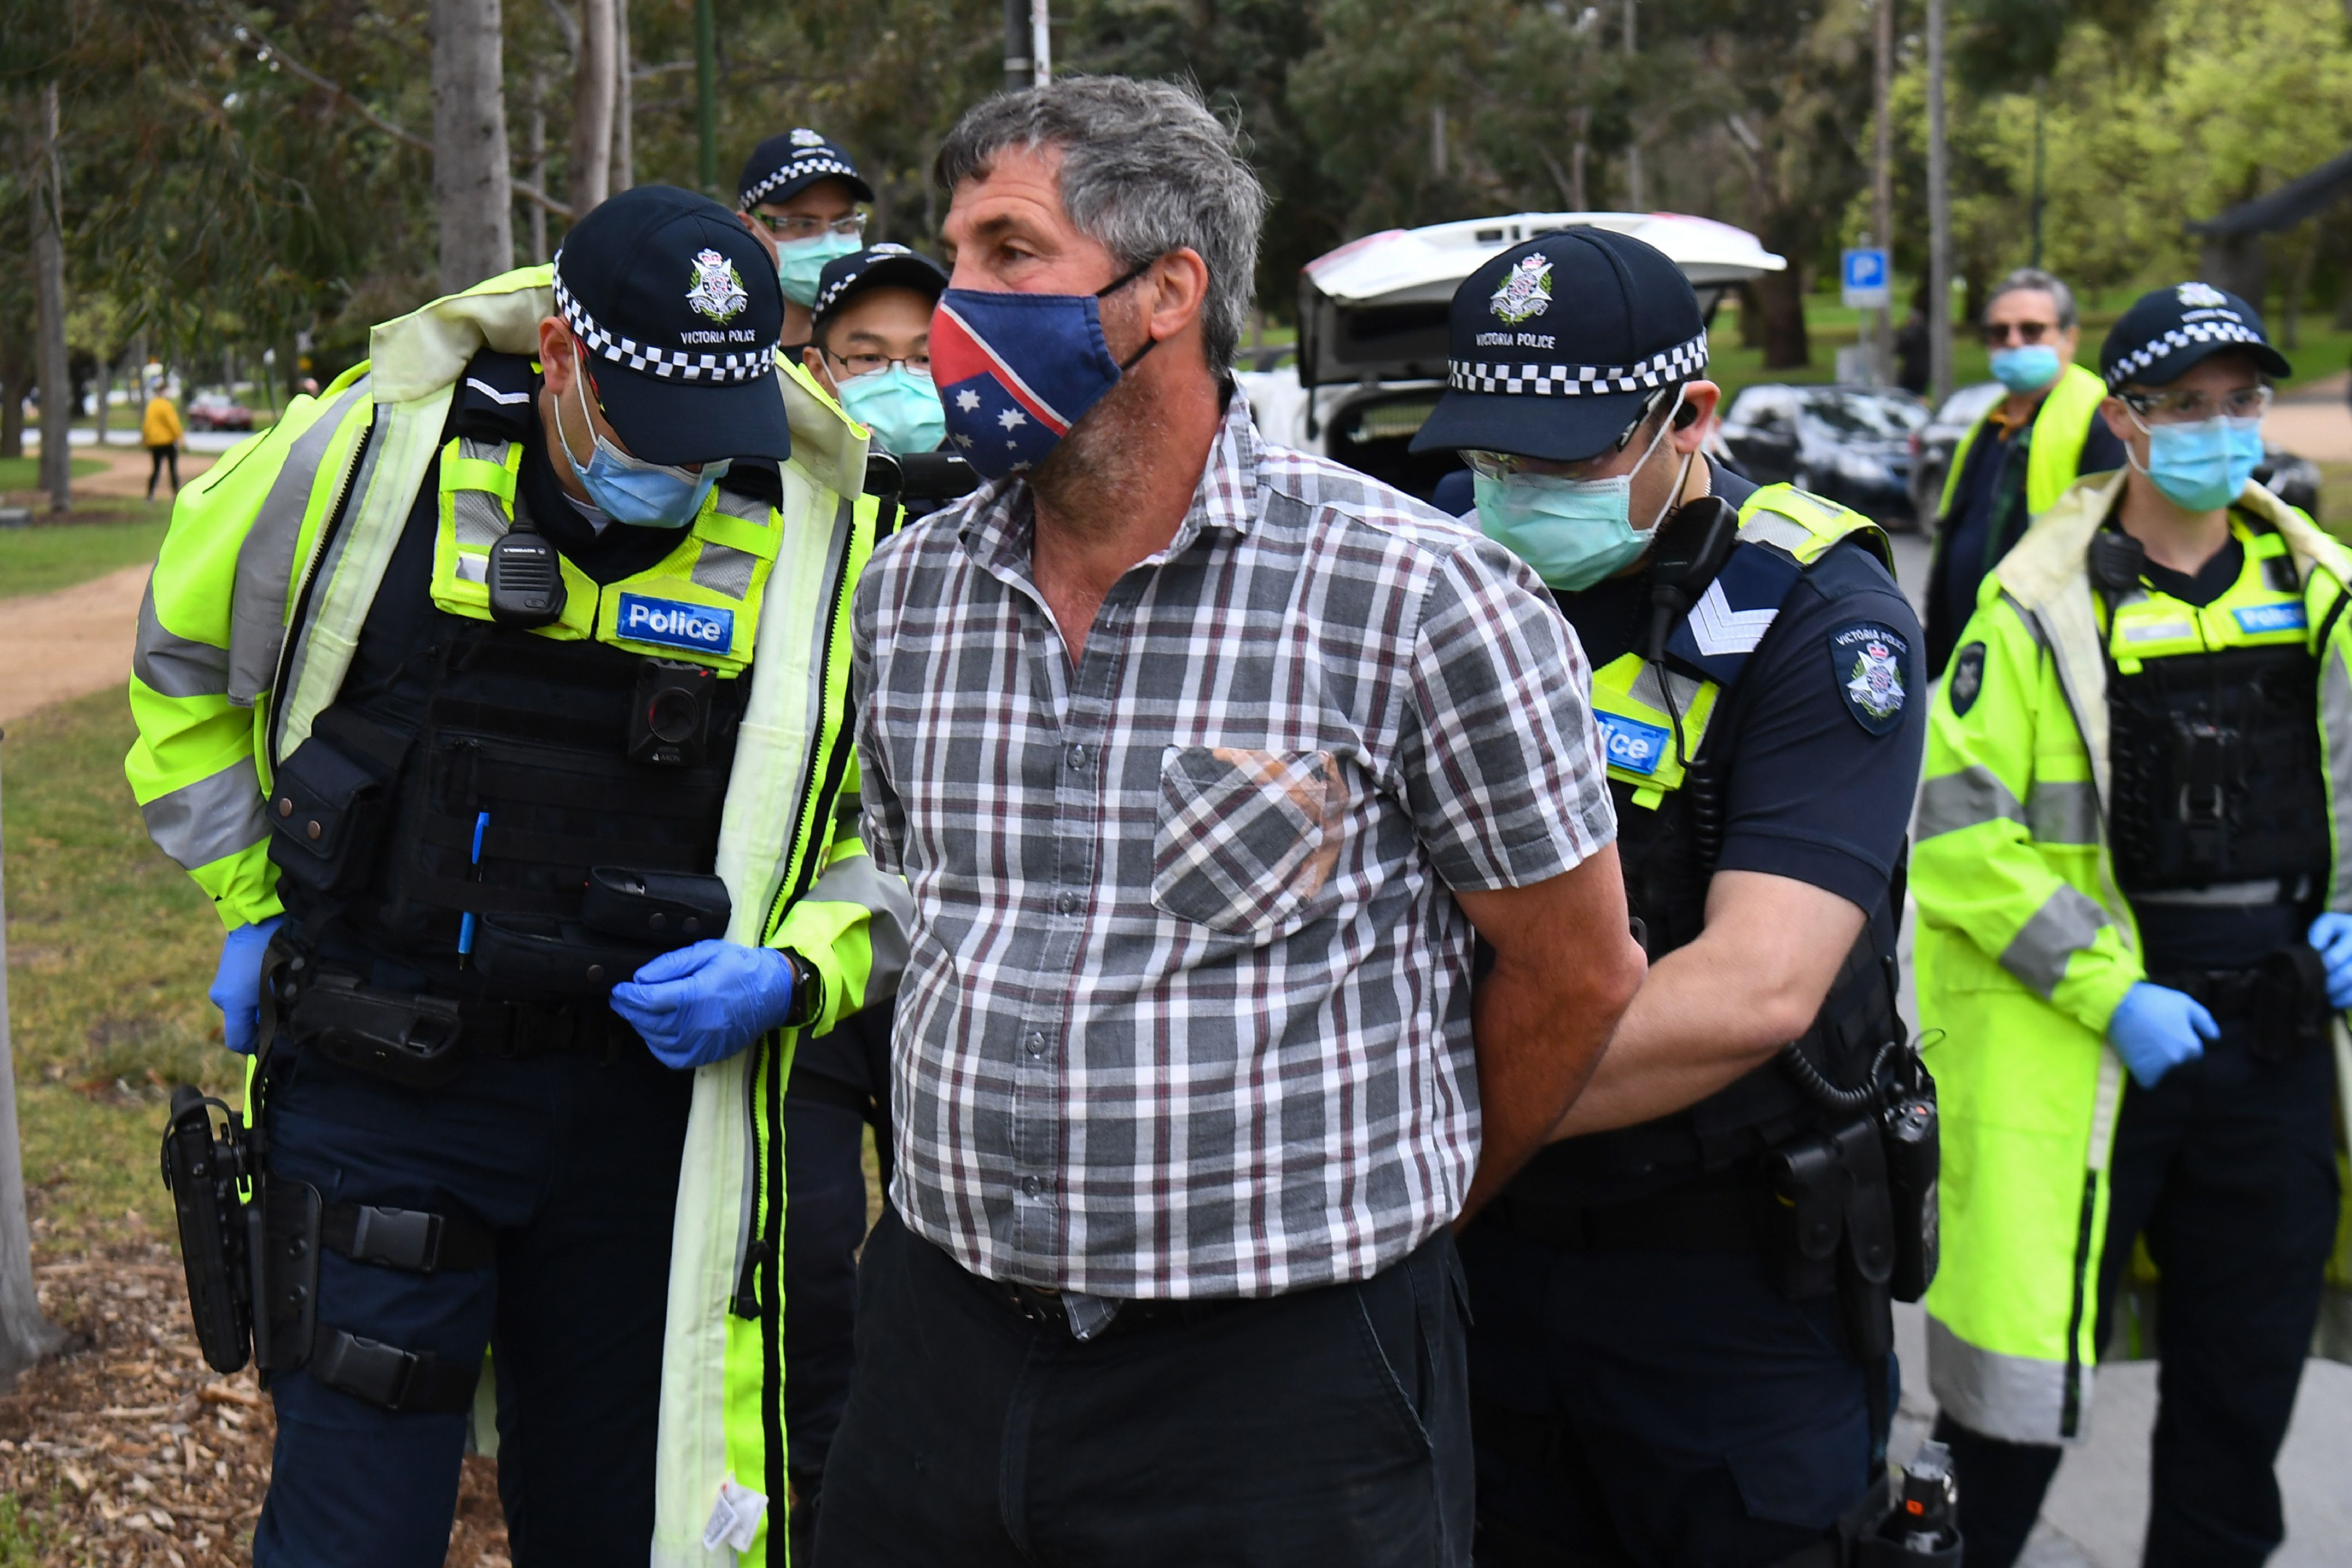 Police detain a protester during an anti-lockdown rally in Melbourne on September 12, 2020.